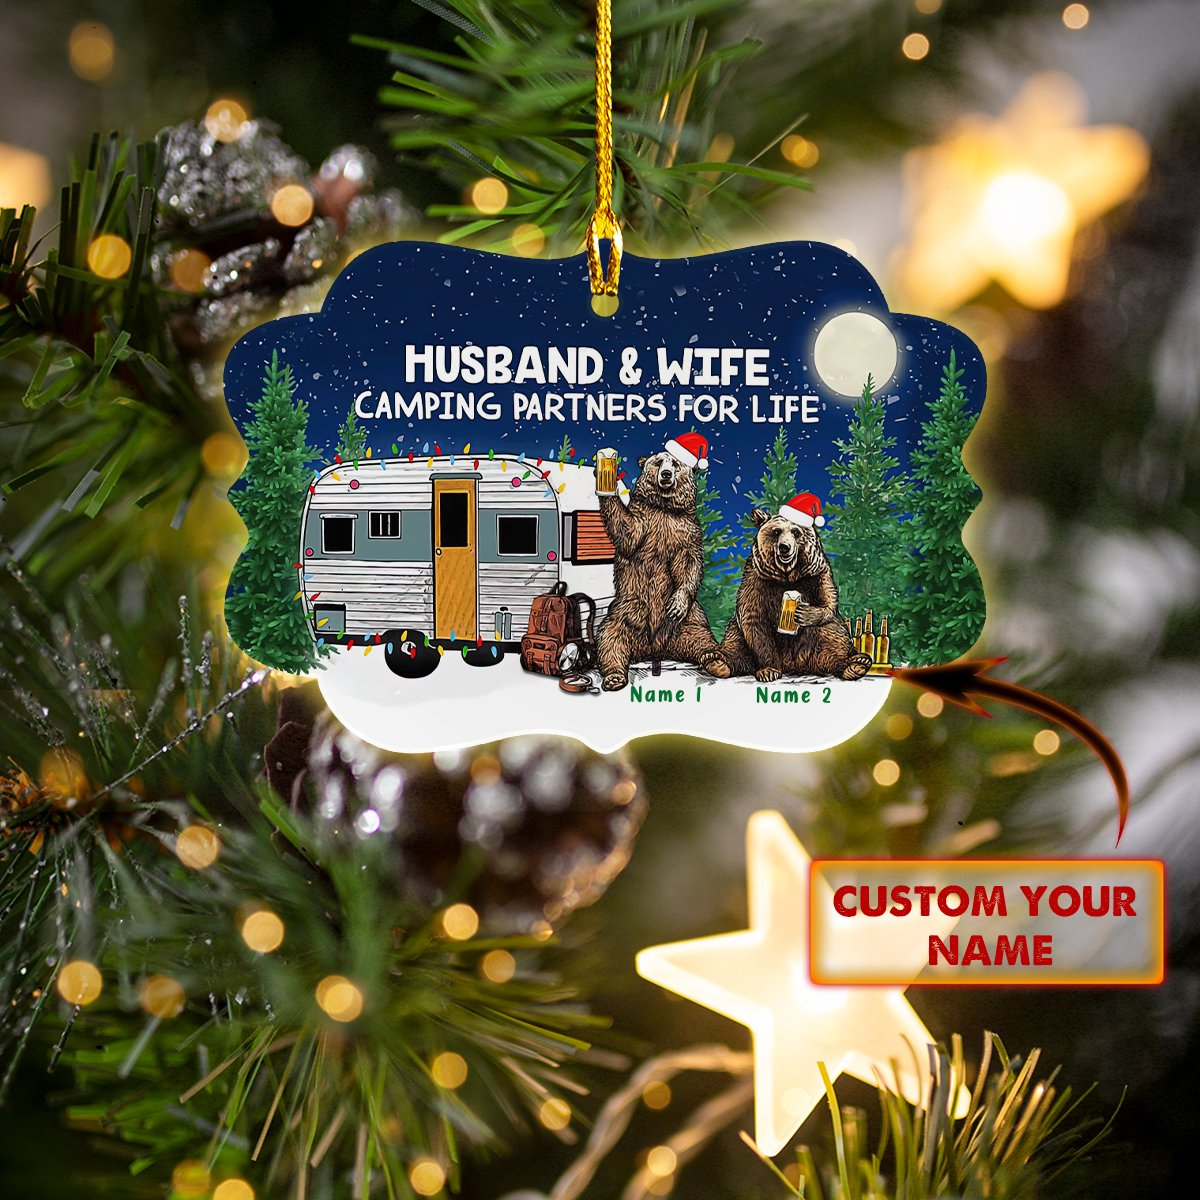 Custom Name Husband and wife Camping partner for life lovely bear ornament